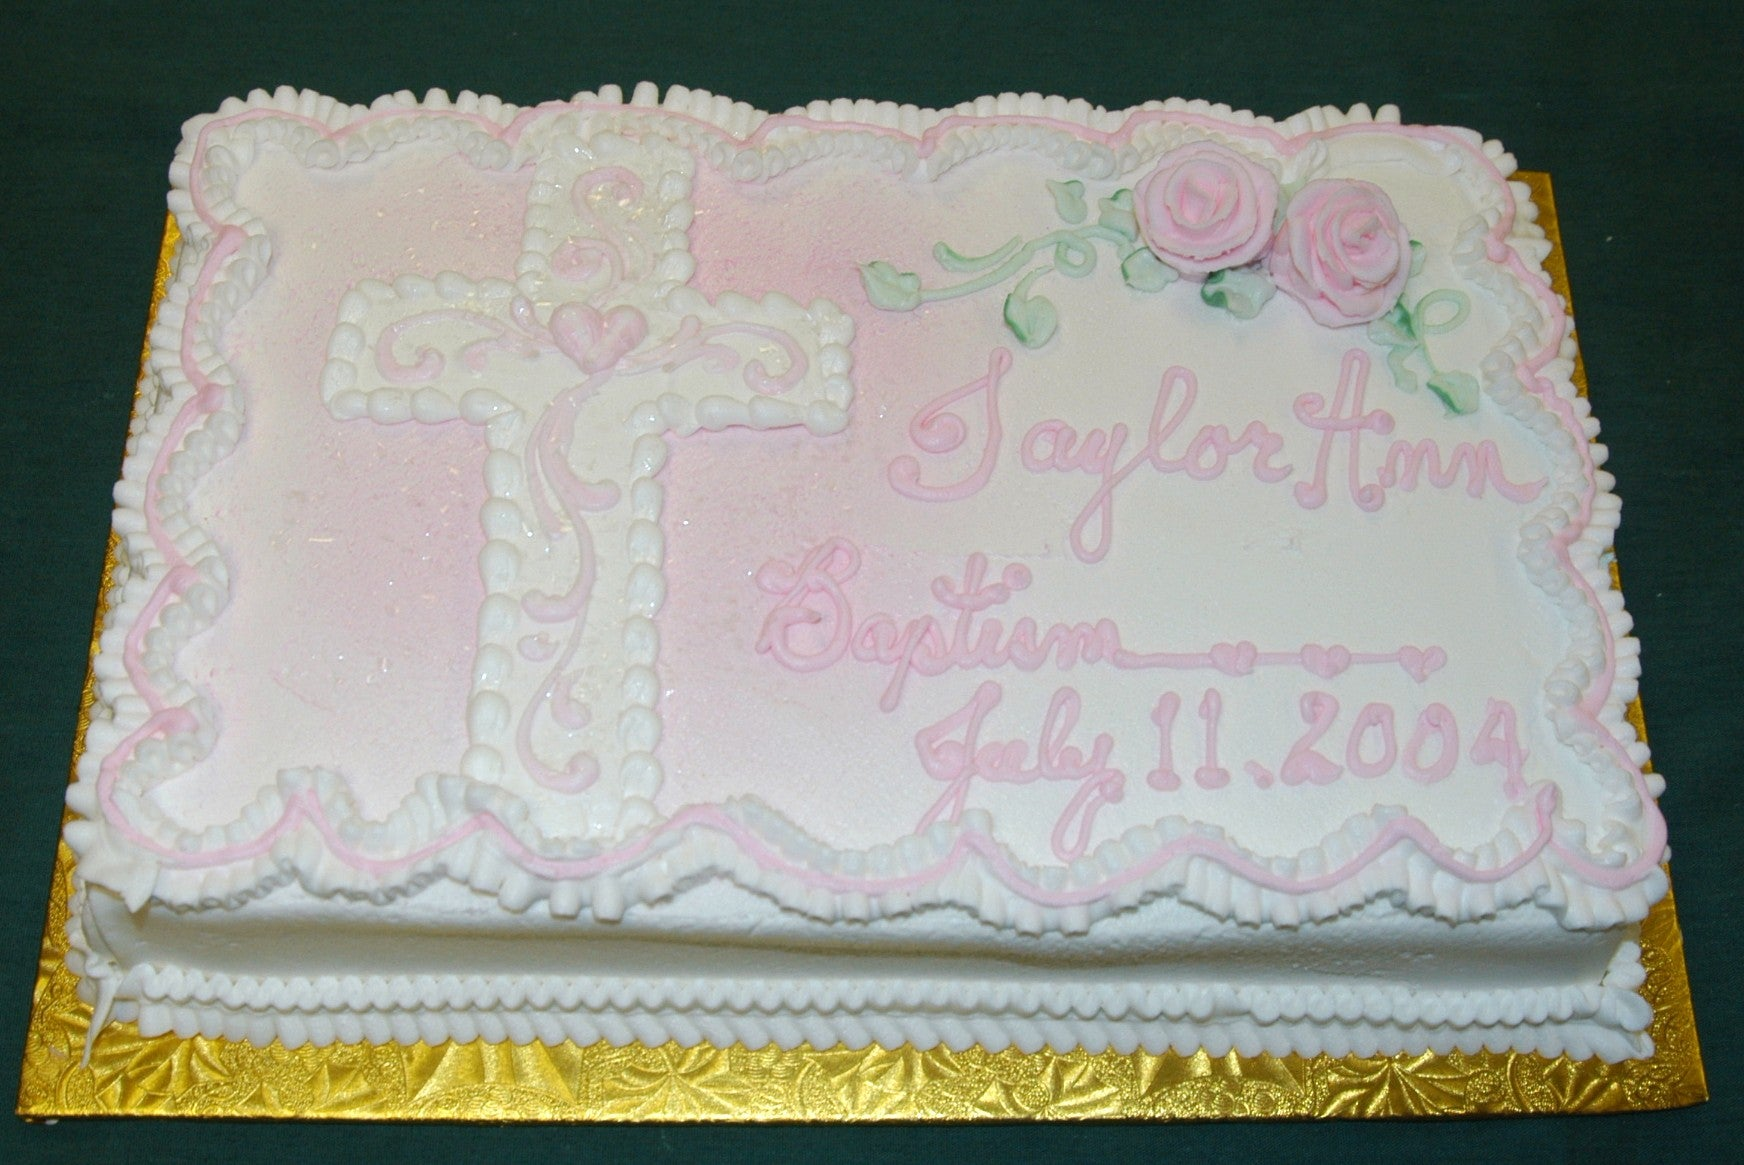 Detailed Cross With Roses Cake